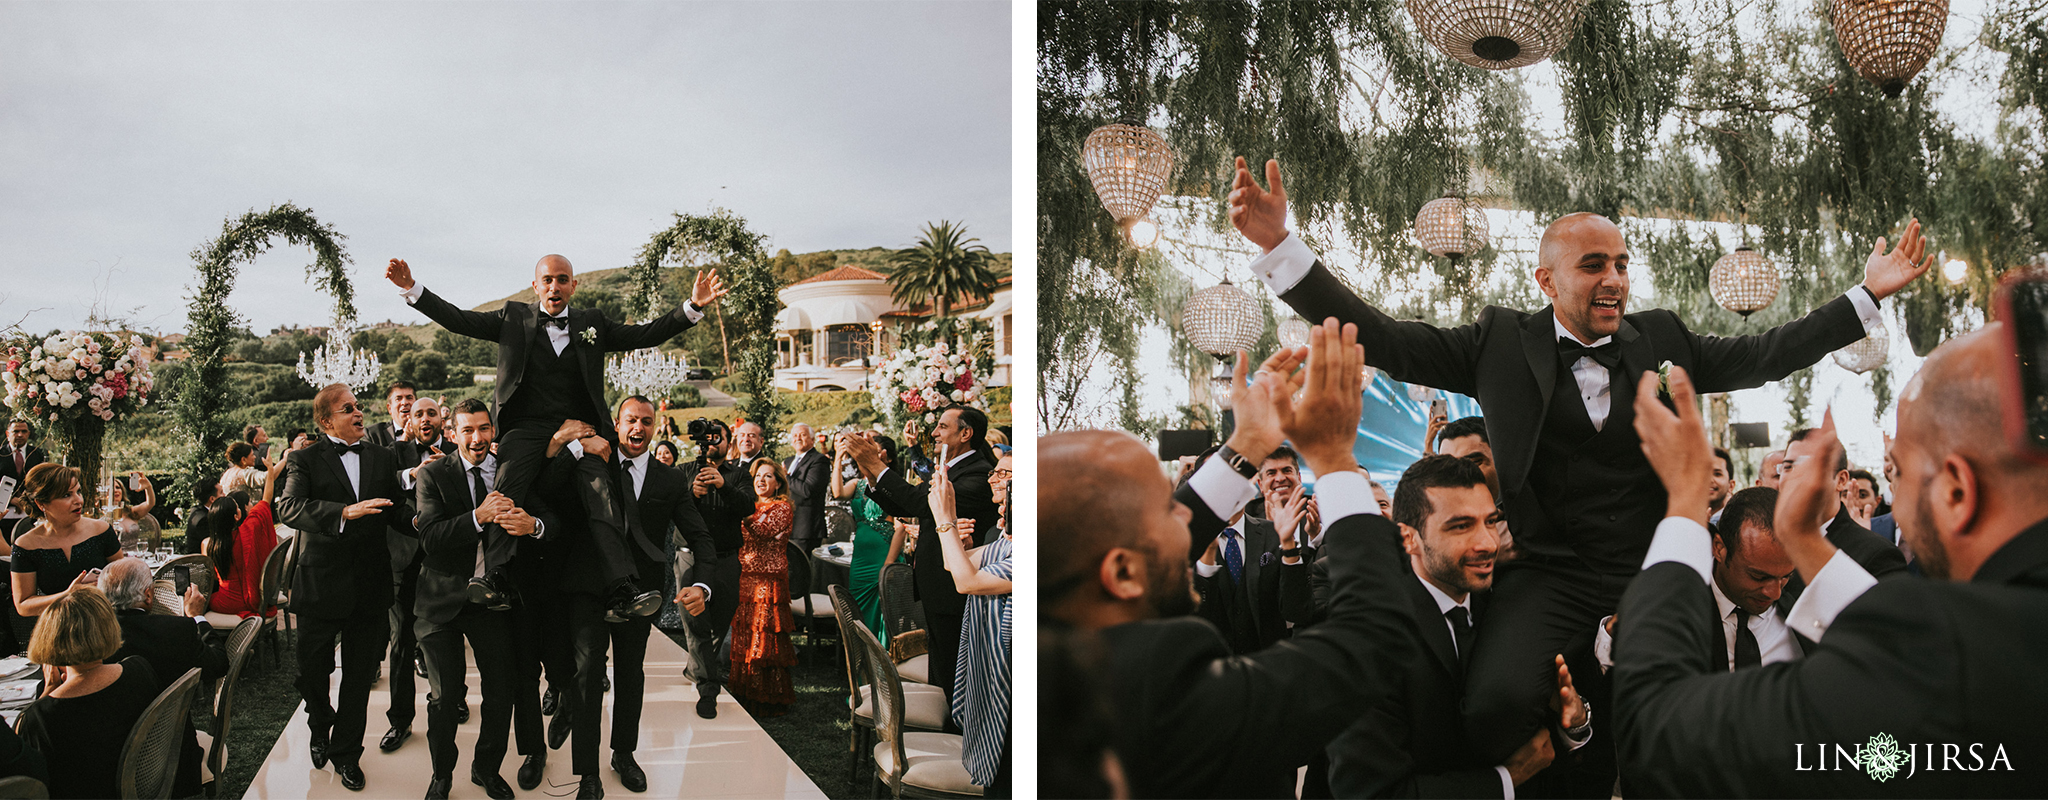 39 Pelican Hill Resort Orange County Arab Wedding Photography